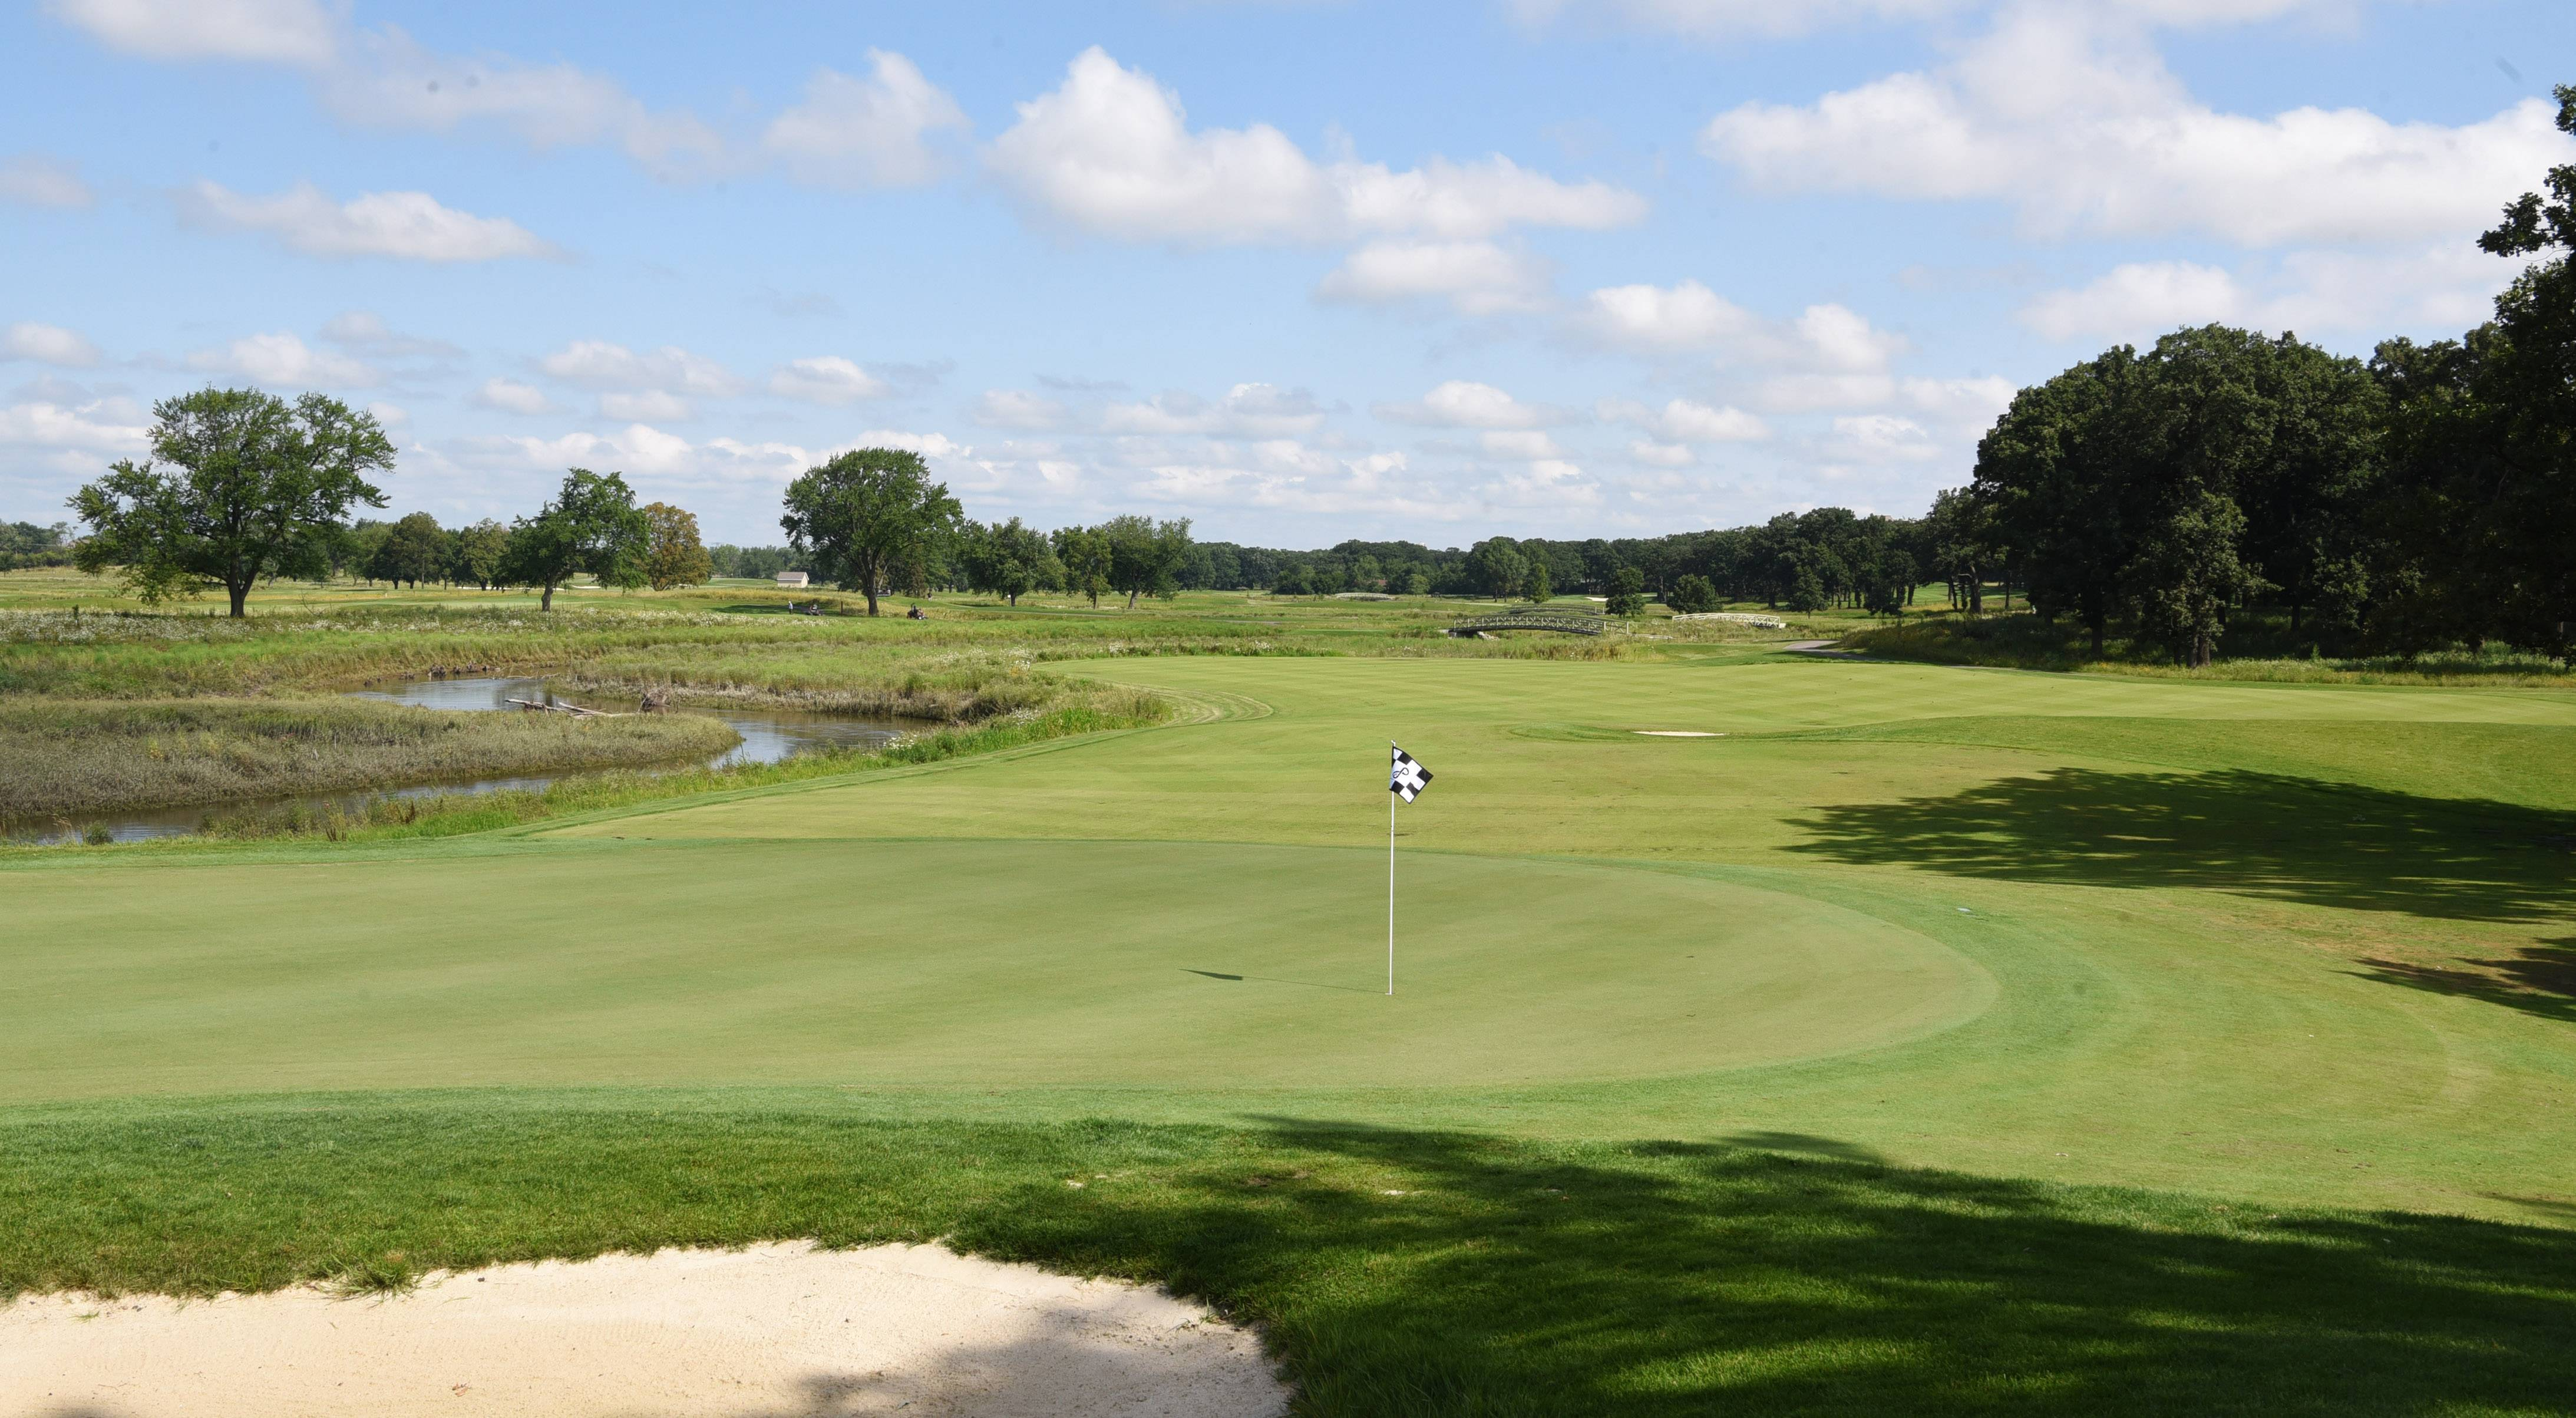 The Preserve at Oak Meadows in Addison to welcome golfers on Monday